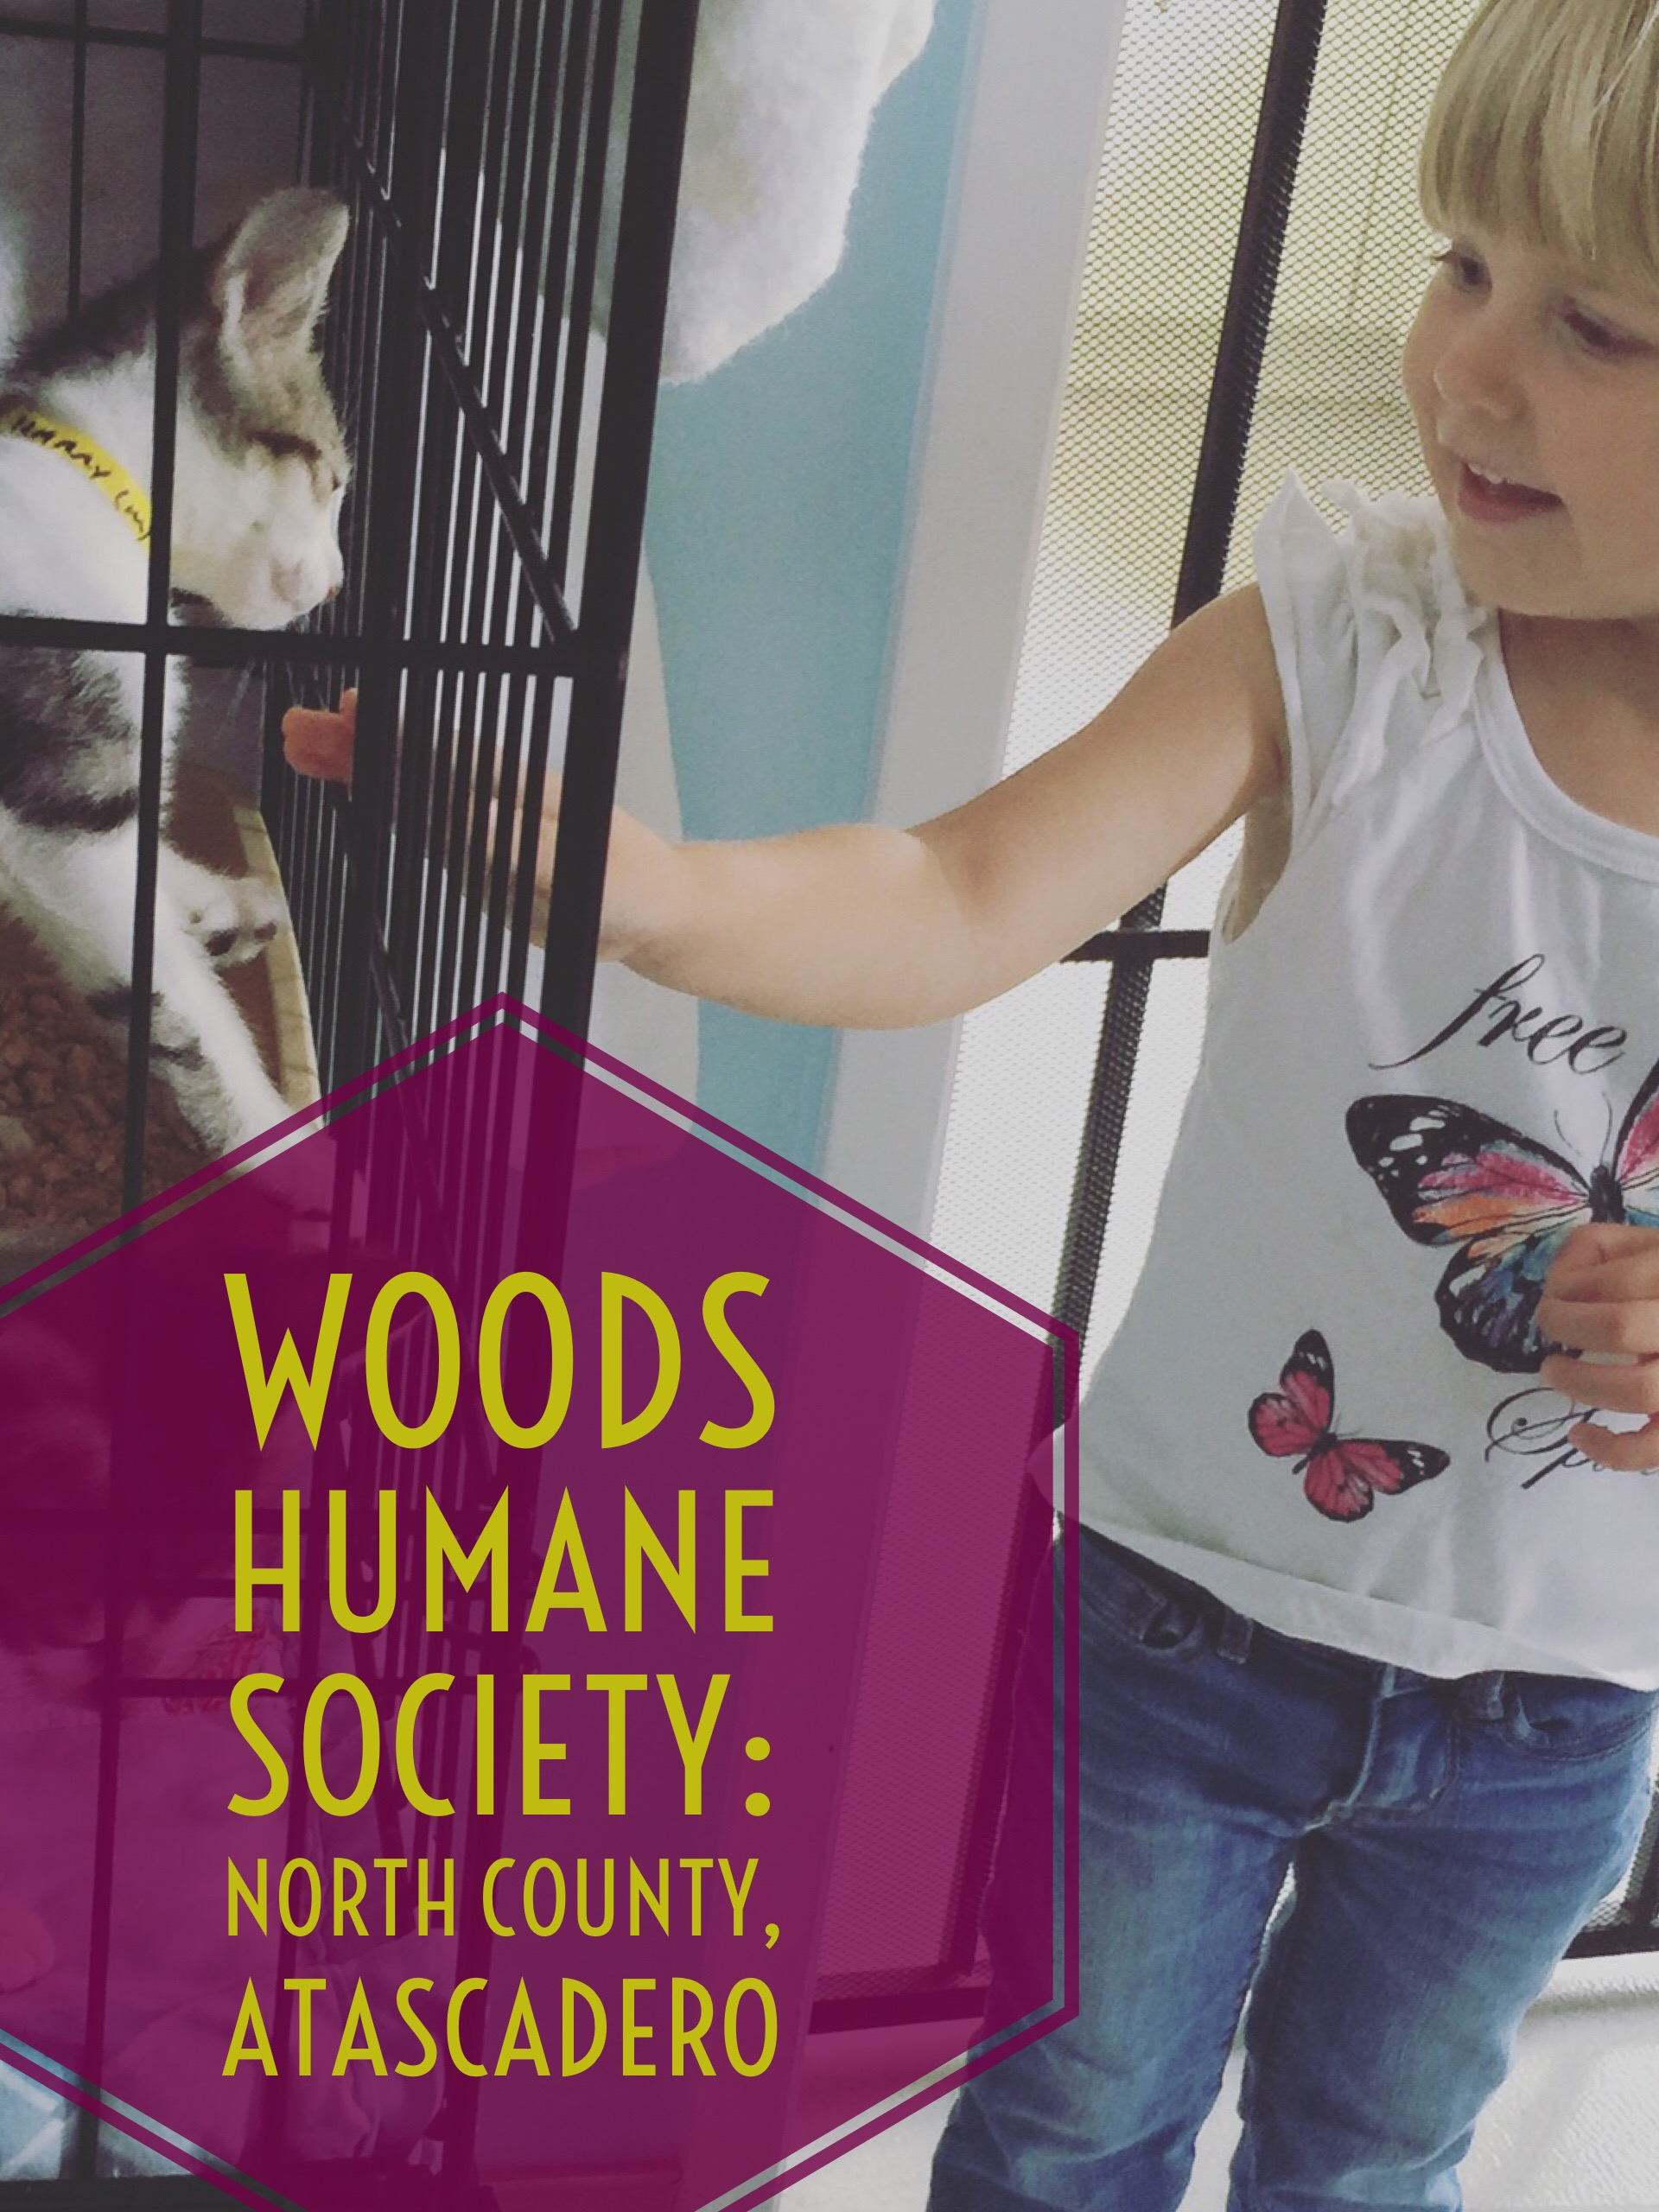 Blog post about petting the cats at Woods Humane Society, North County Campus in Atascadero California. From the mommy blog Two In Tow & On The Go.